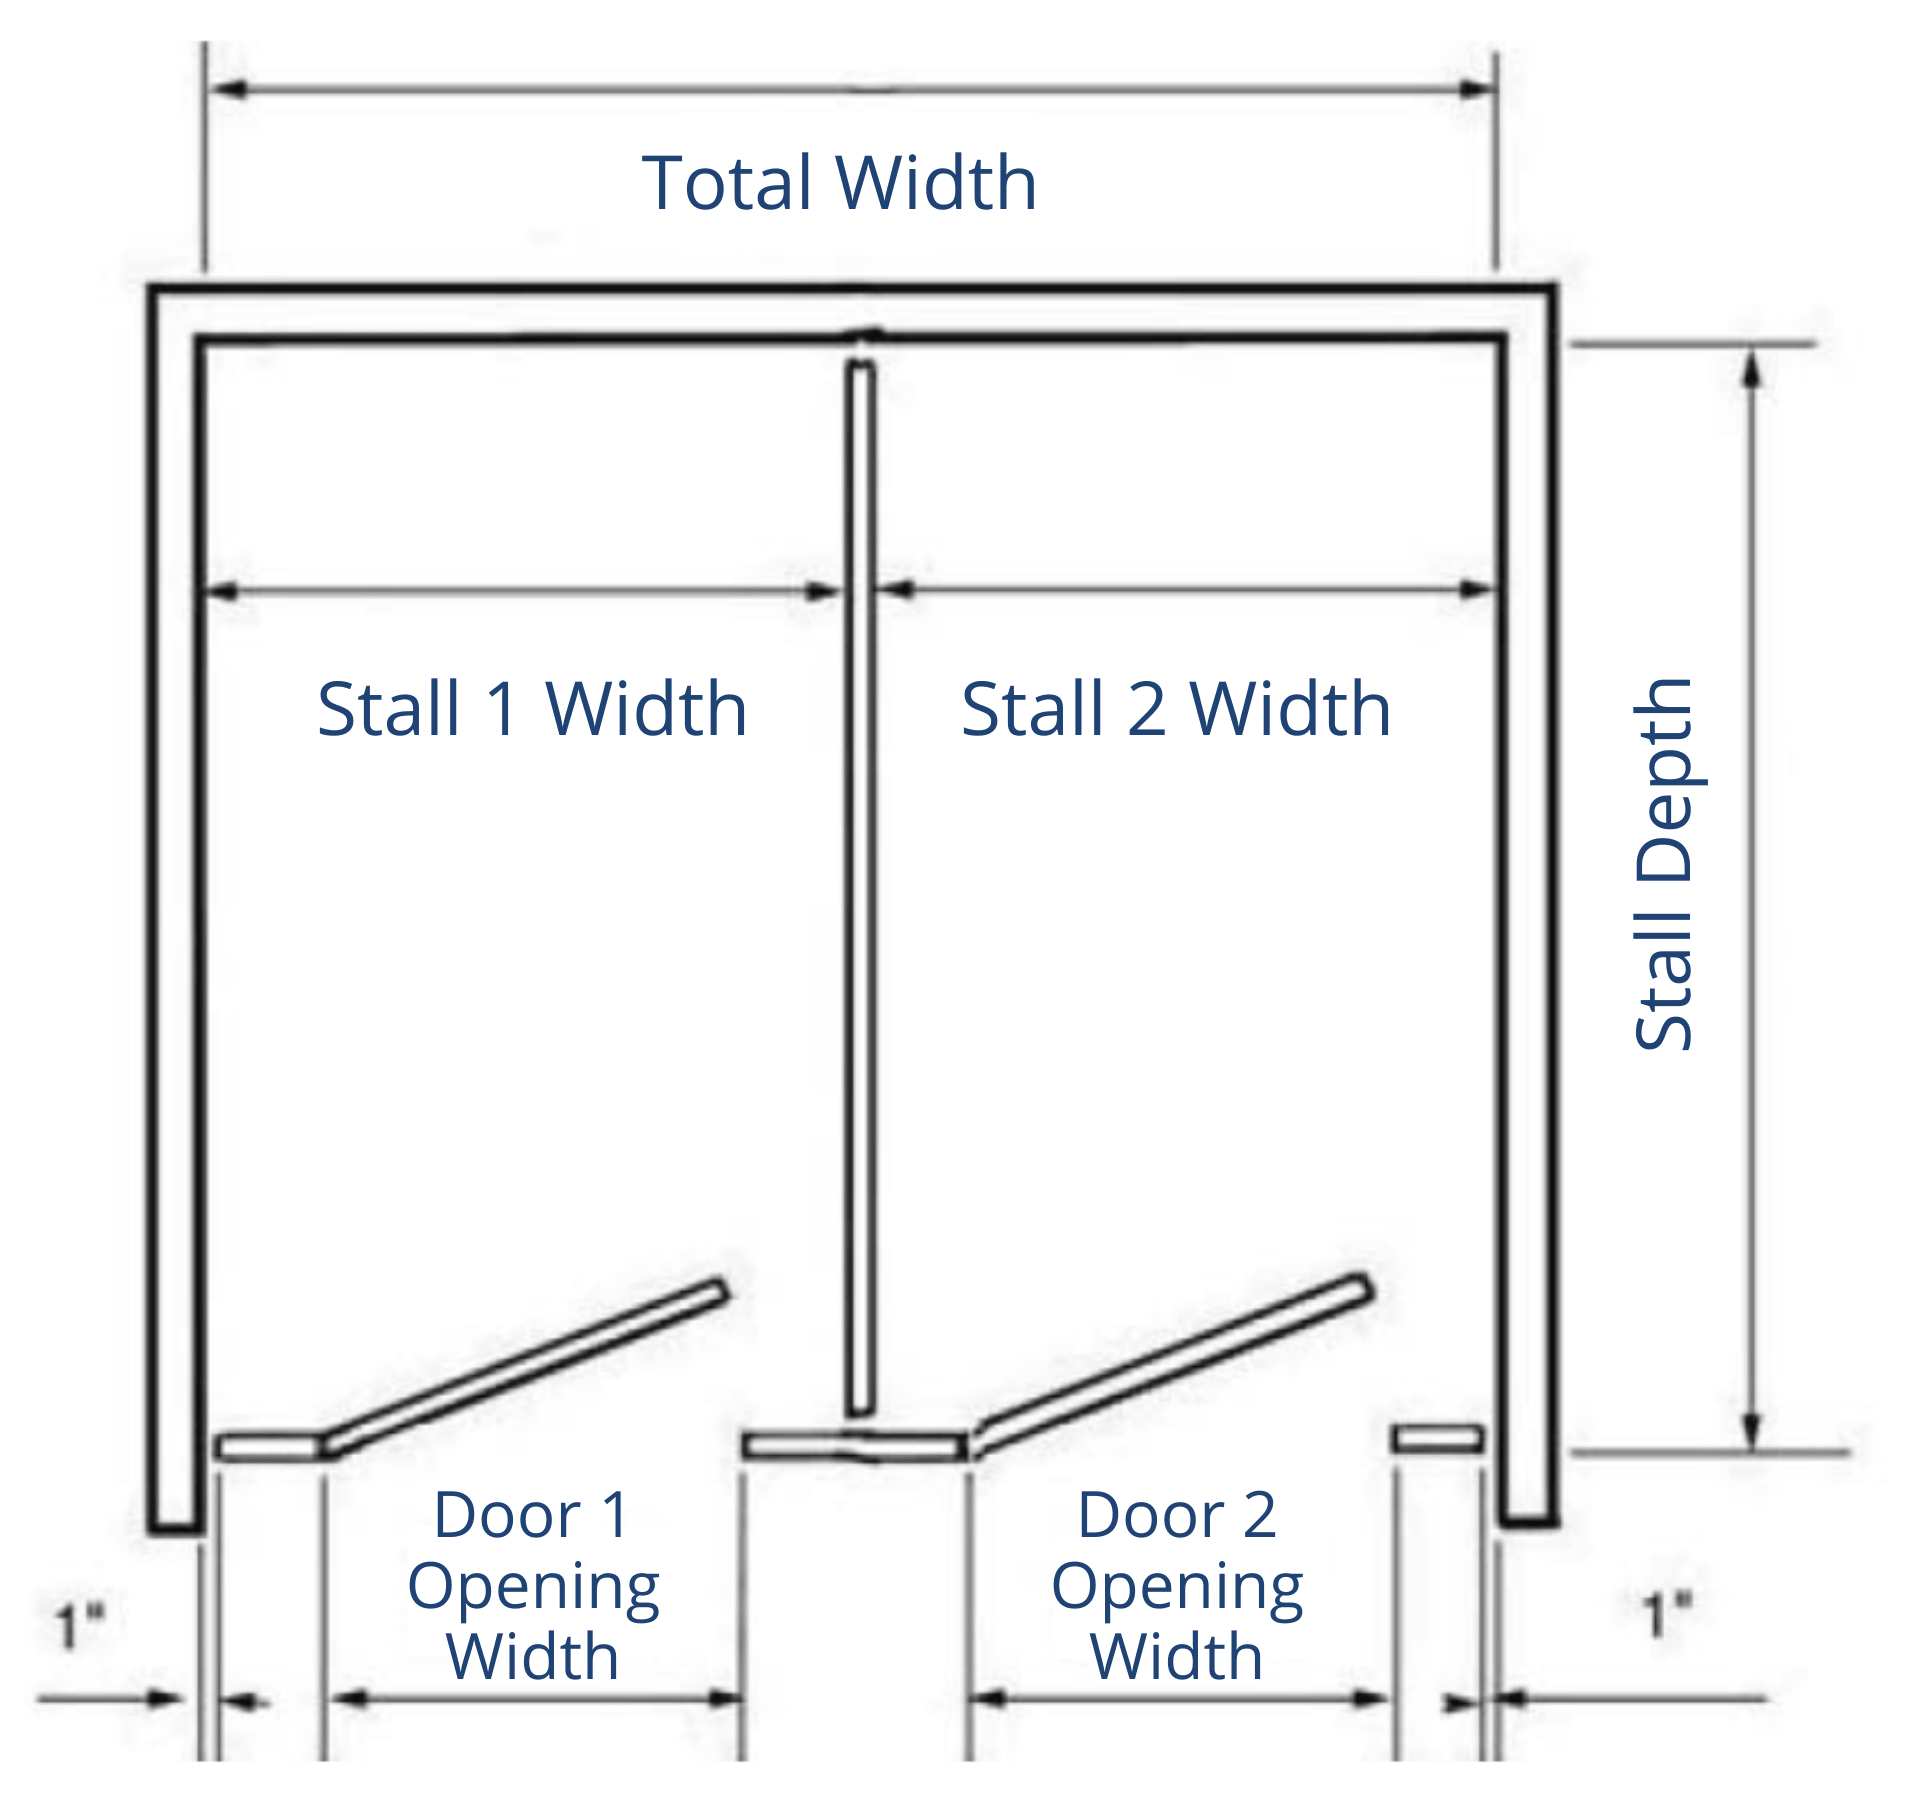 2 Stalls between 2 walls Diagram